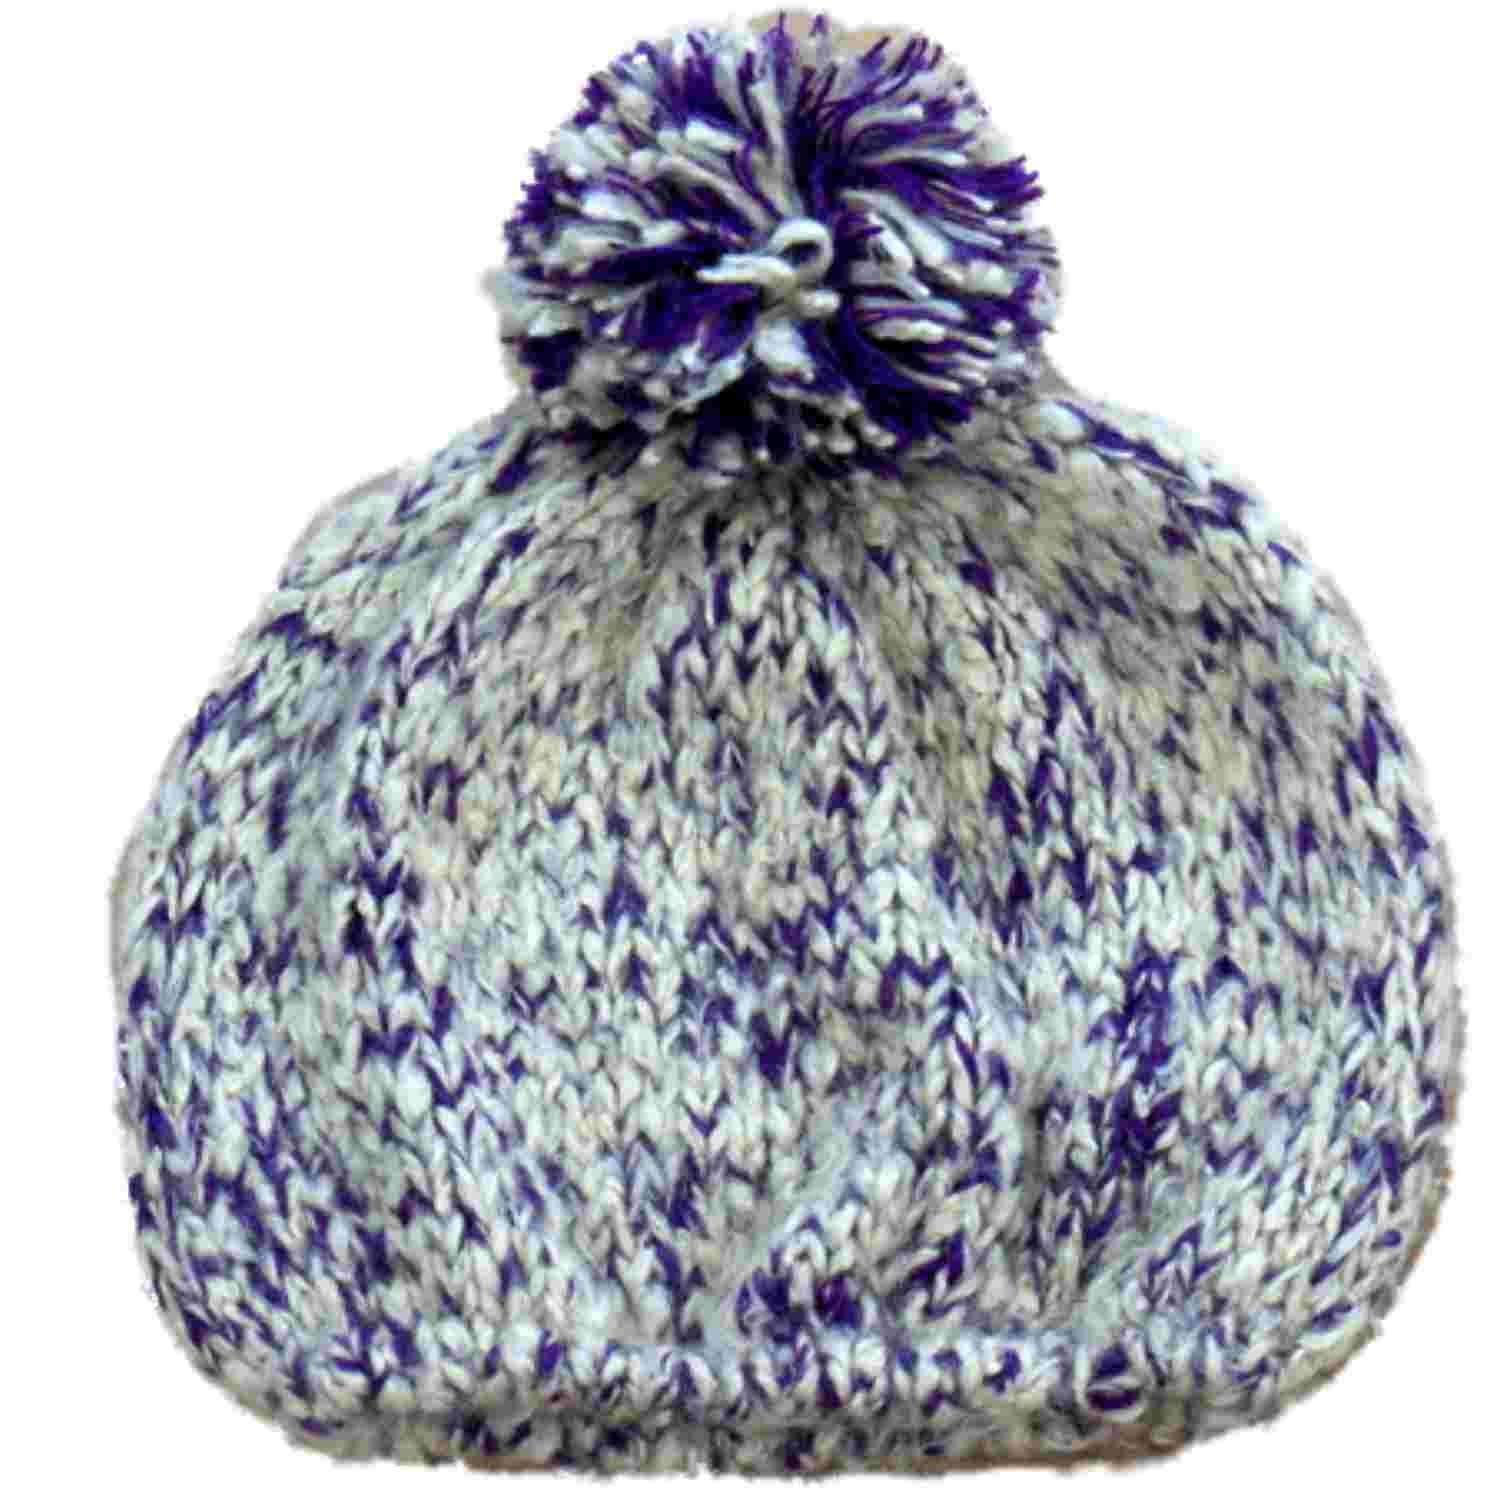 7ed19bdebb682 Get Quotations · Sonoma Womens Purple And Cream Colored Knit Beanie  Stocking Cap Hat